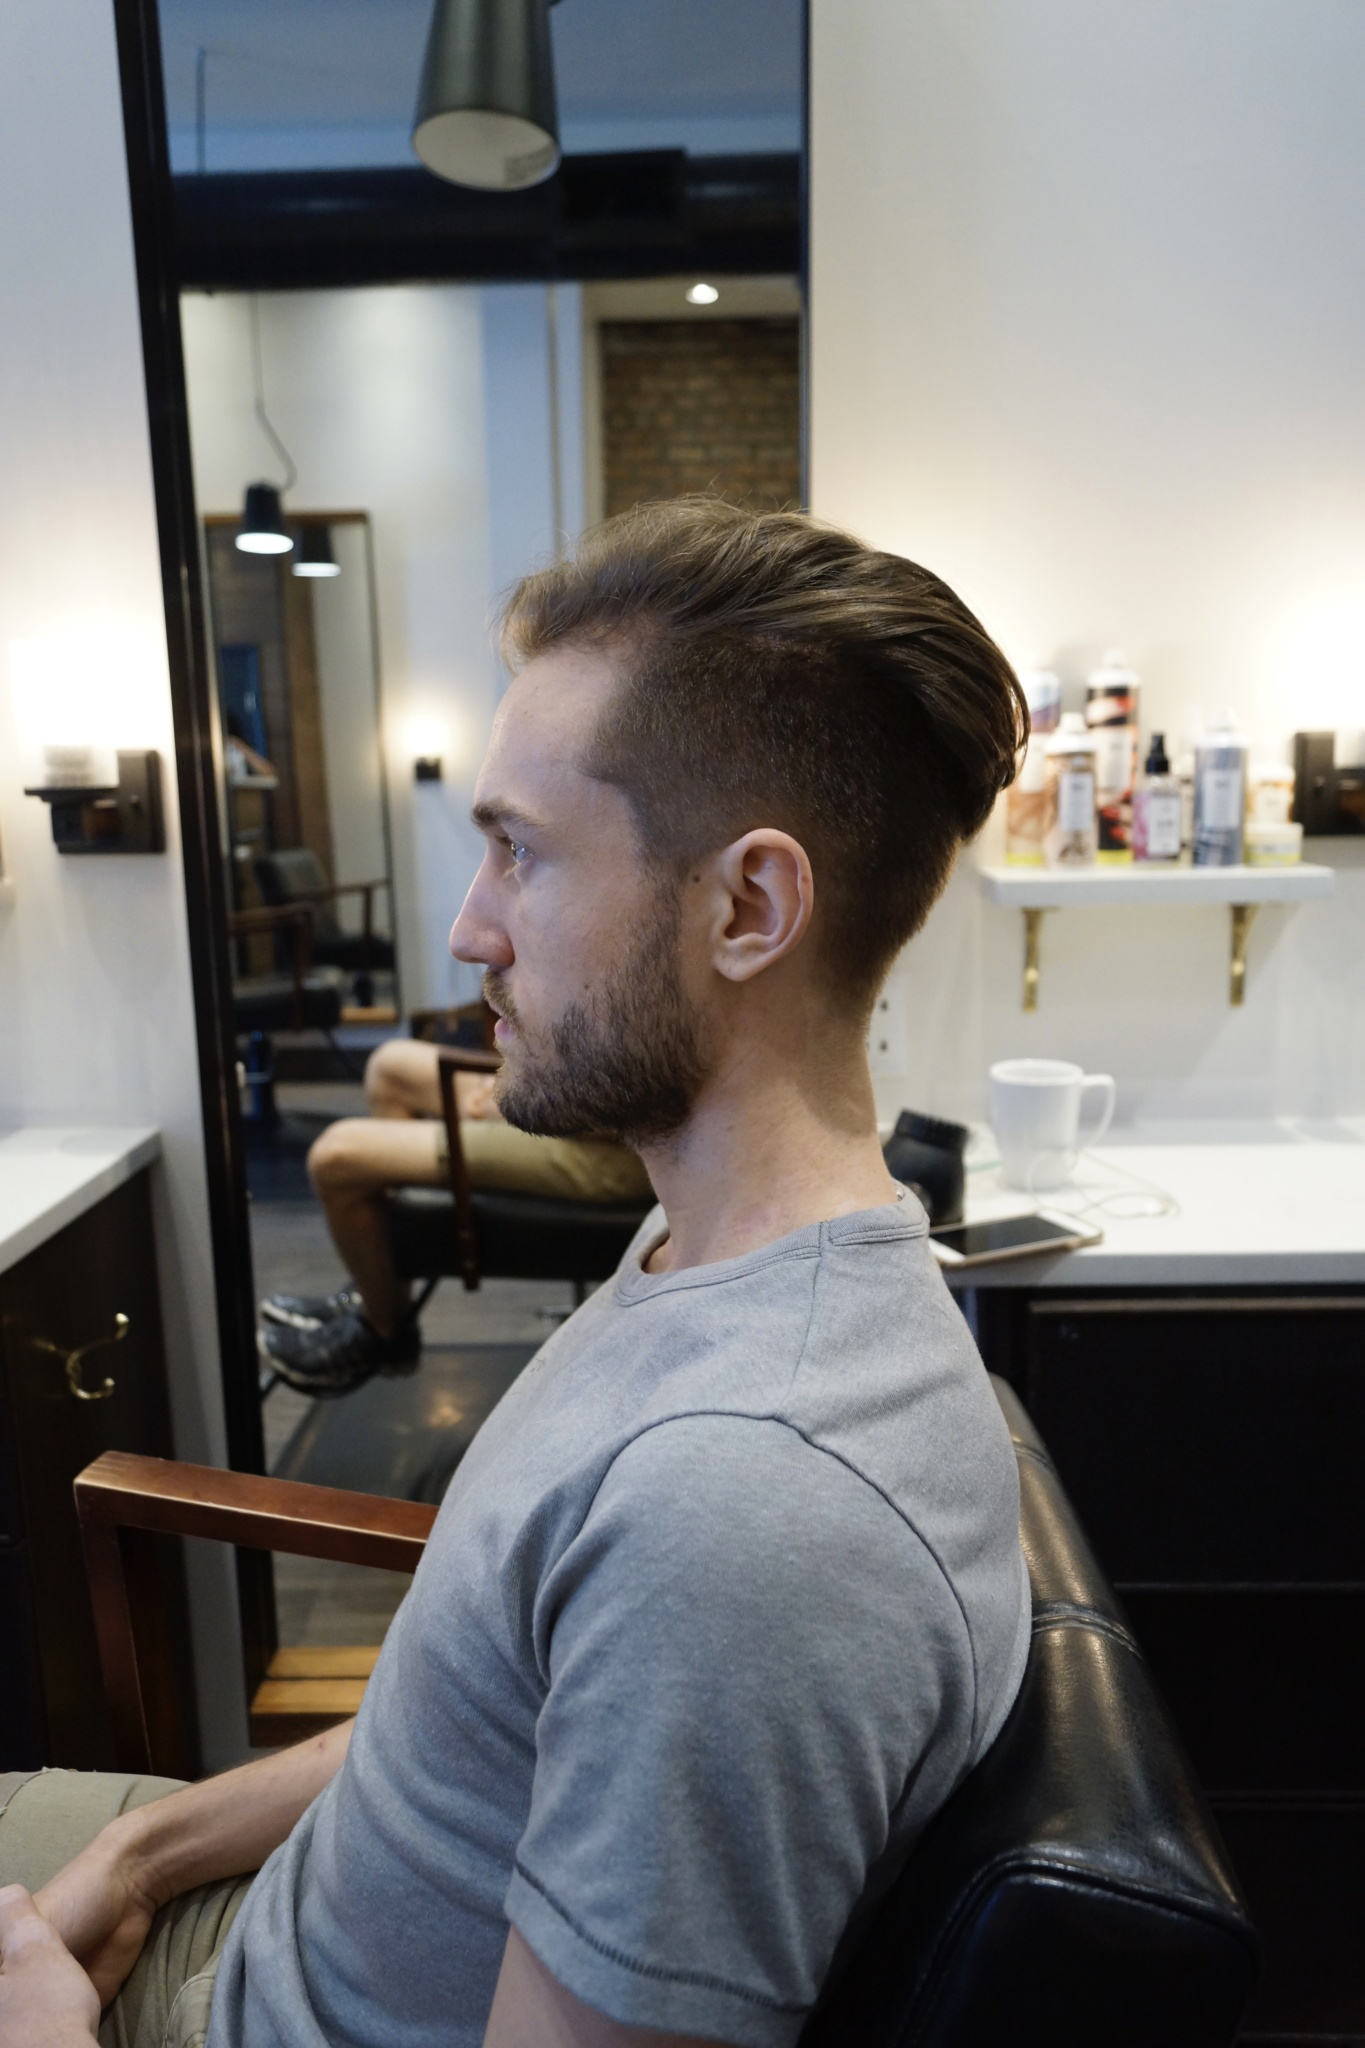 Hair Today Gone Tomorrow - Hair Today, Gone Tomorrow - Haircut - Fox and Jane - Fox & Jane - Steven Killian - Men's Hair - 2017 Men's Hair - The Killer Look - TheKillerLook.com